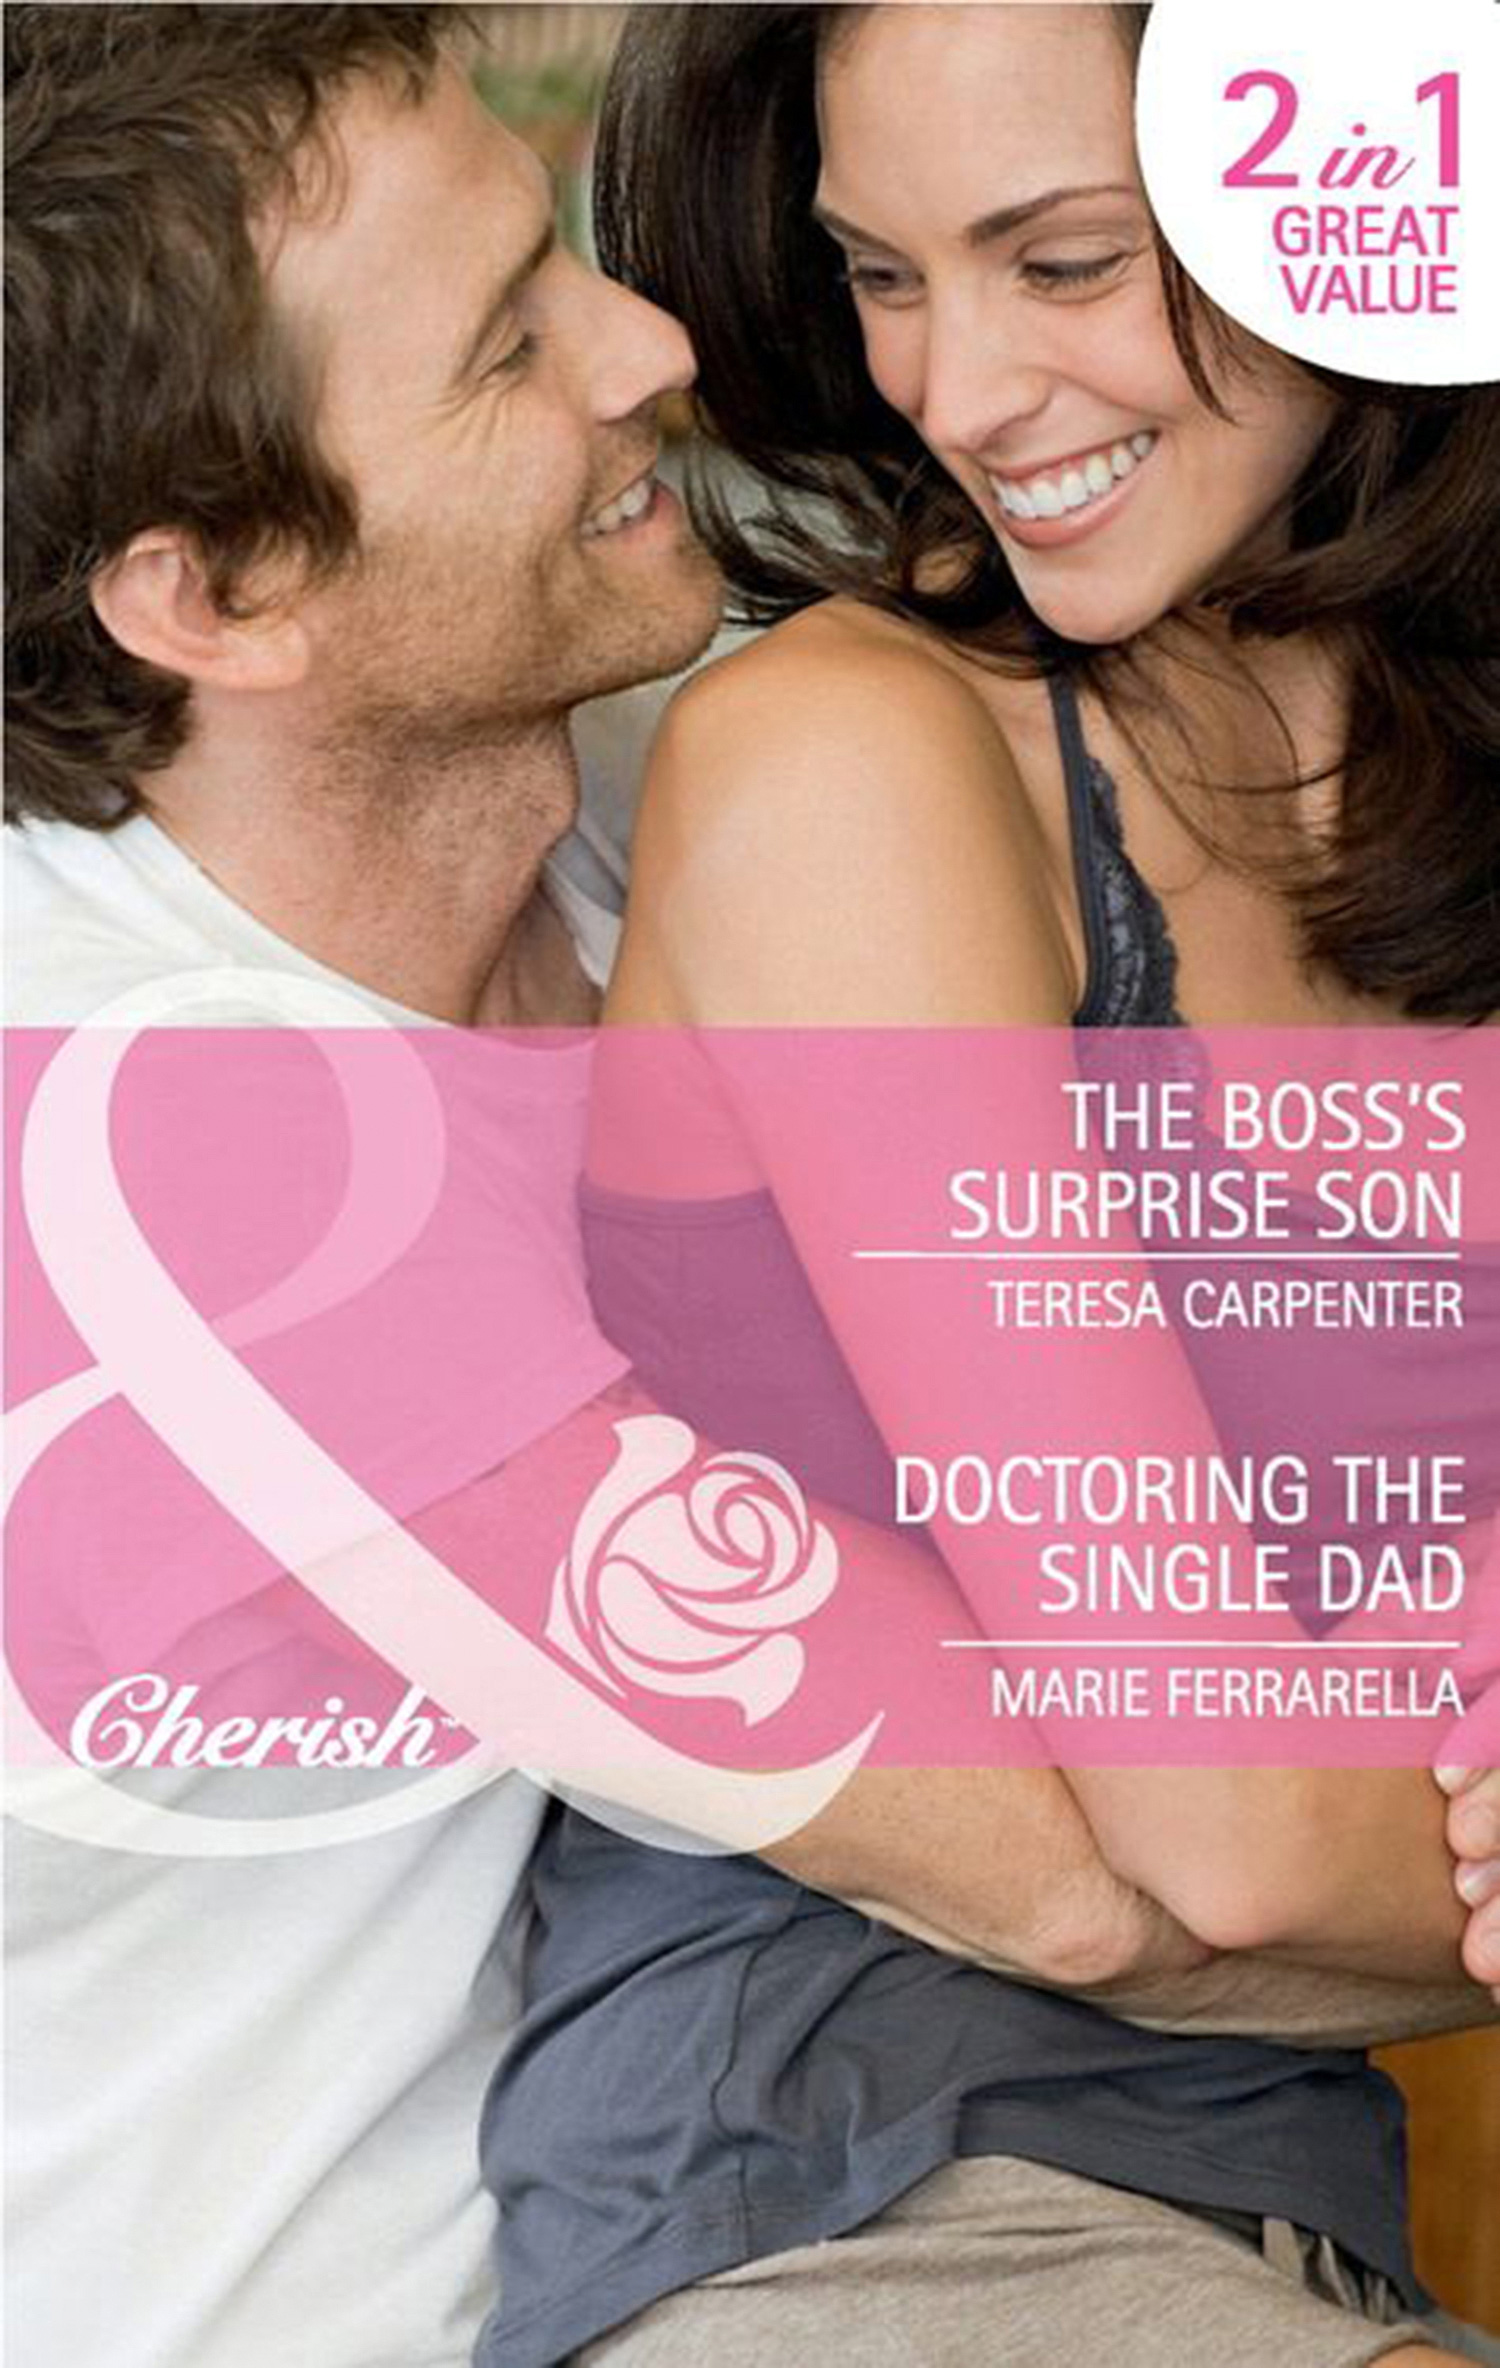 The Boss's Surprise Son / Doctoring the Single Dad